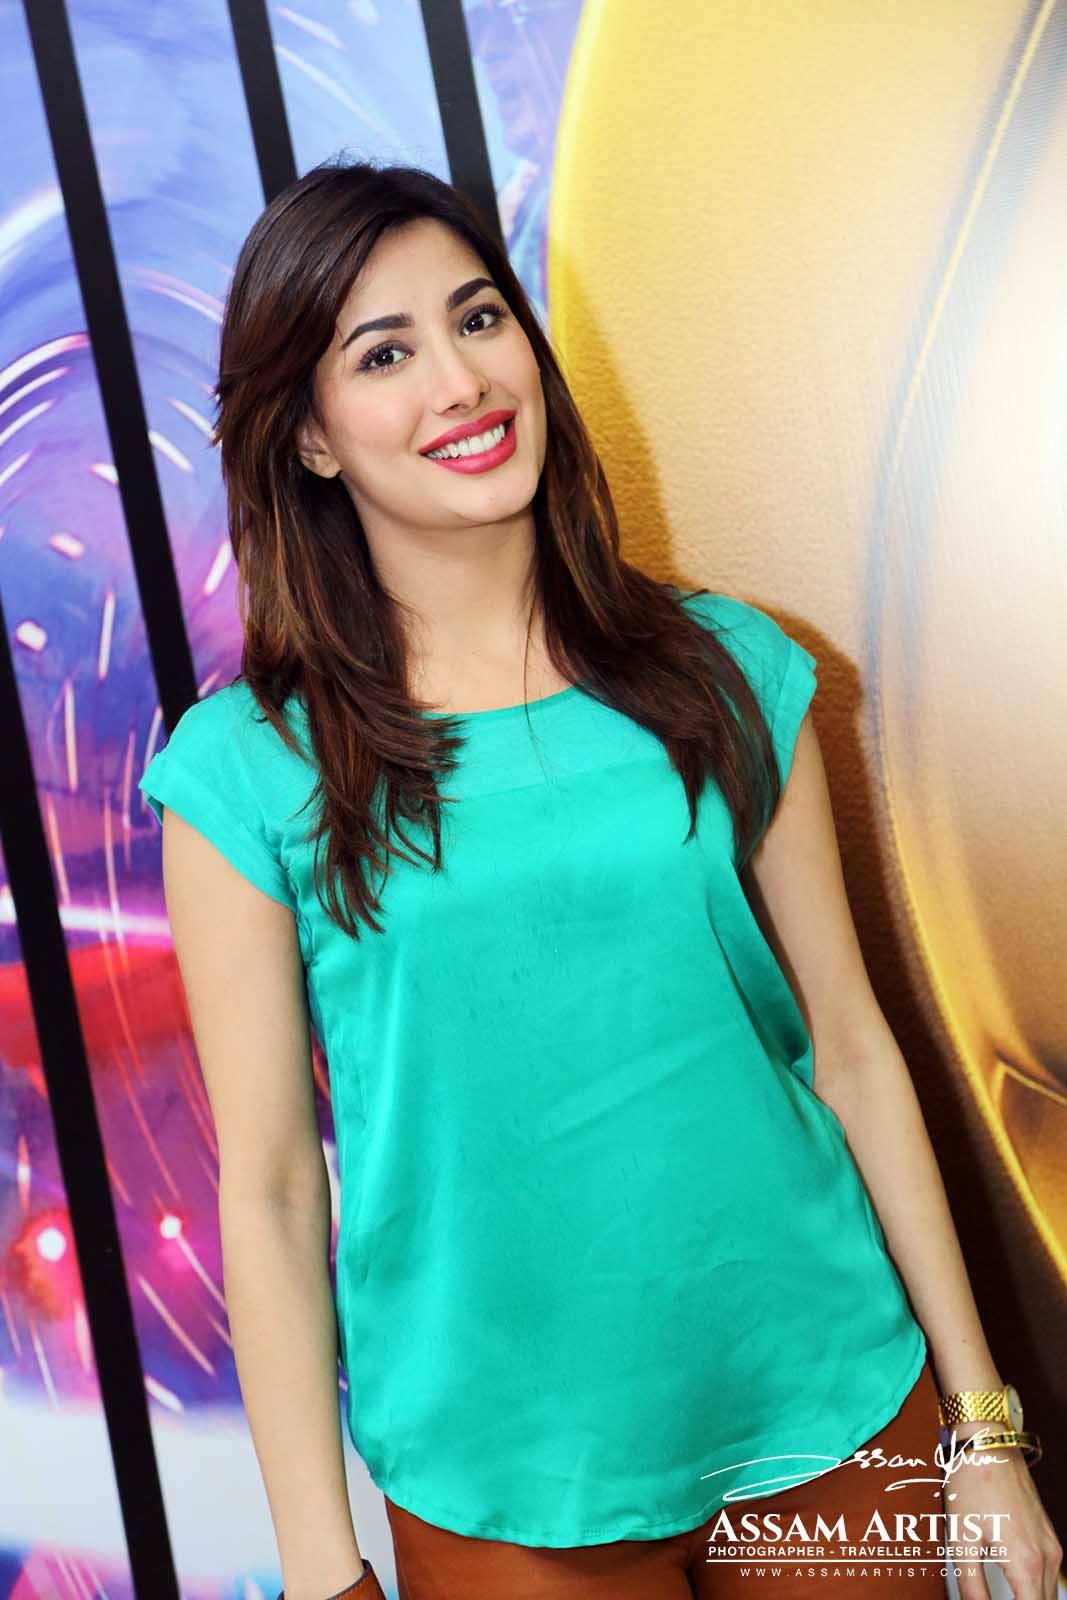 Mehwish Hayat - Actor